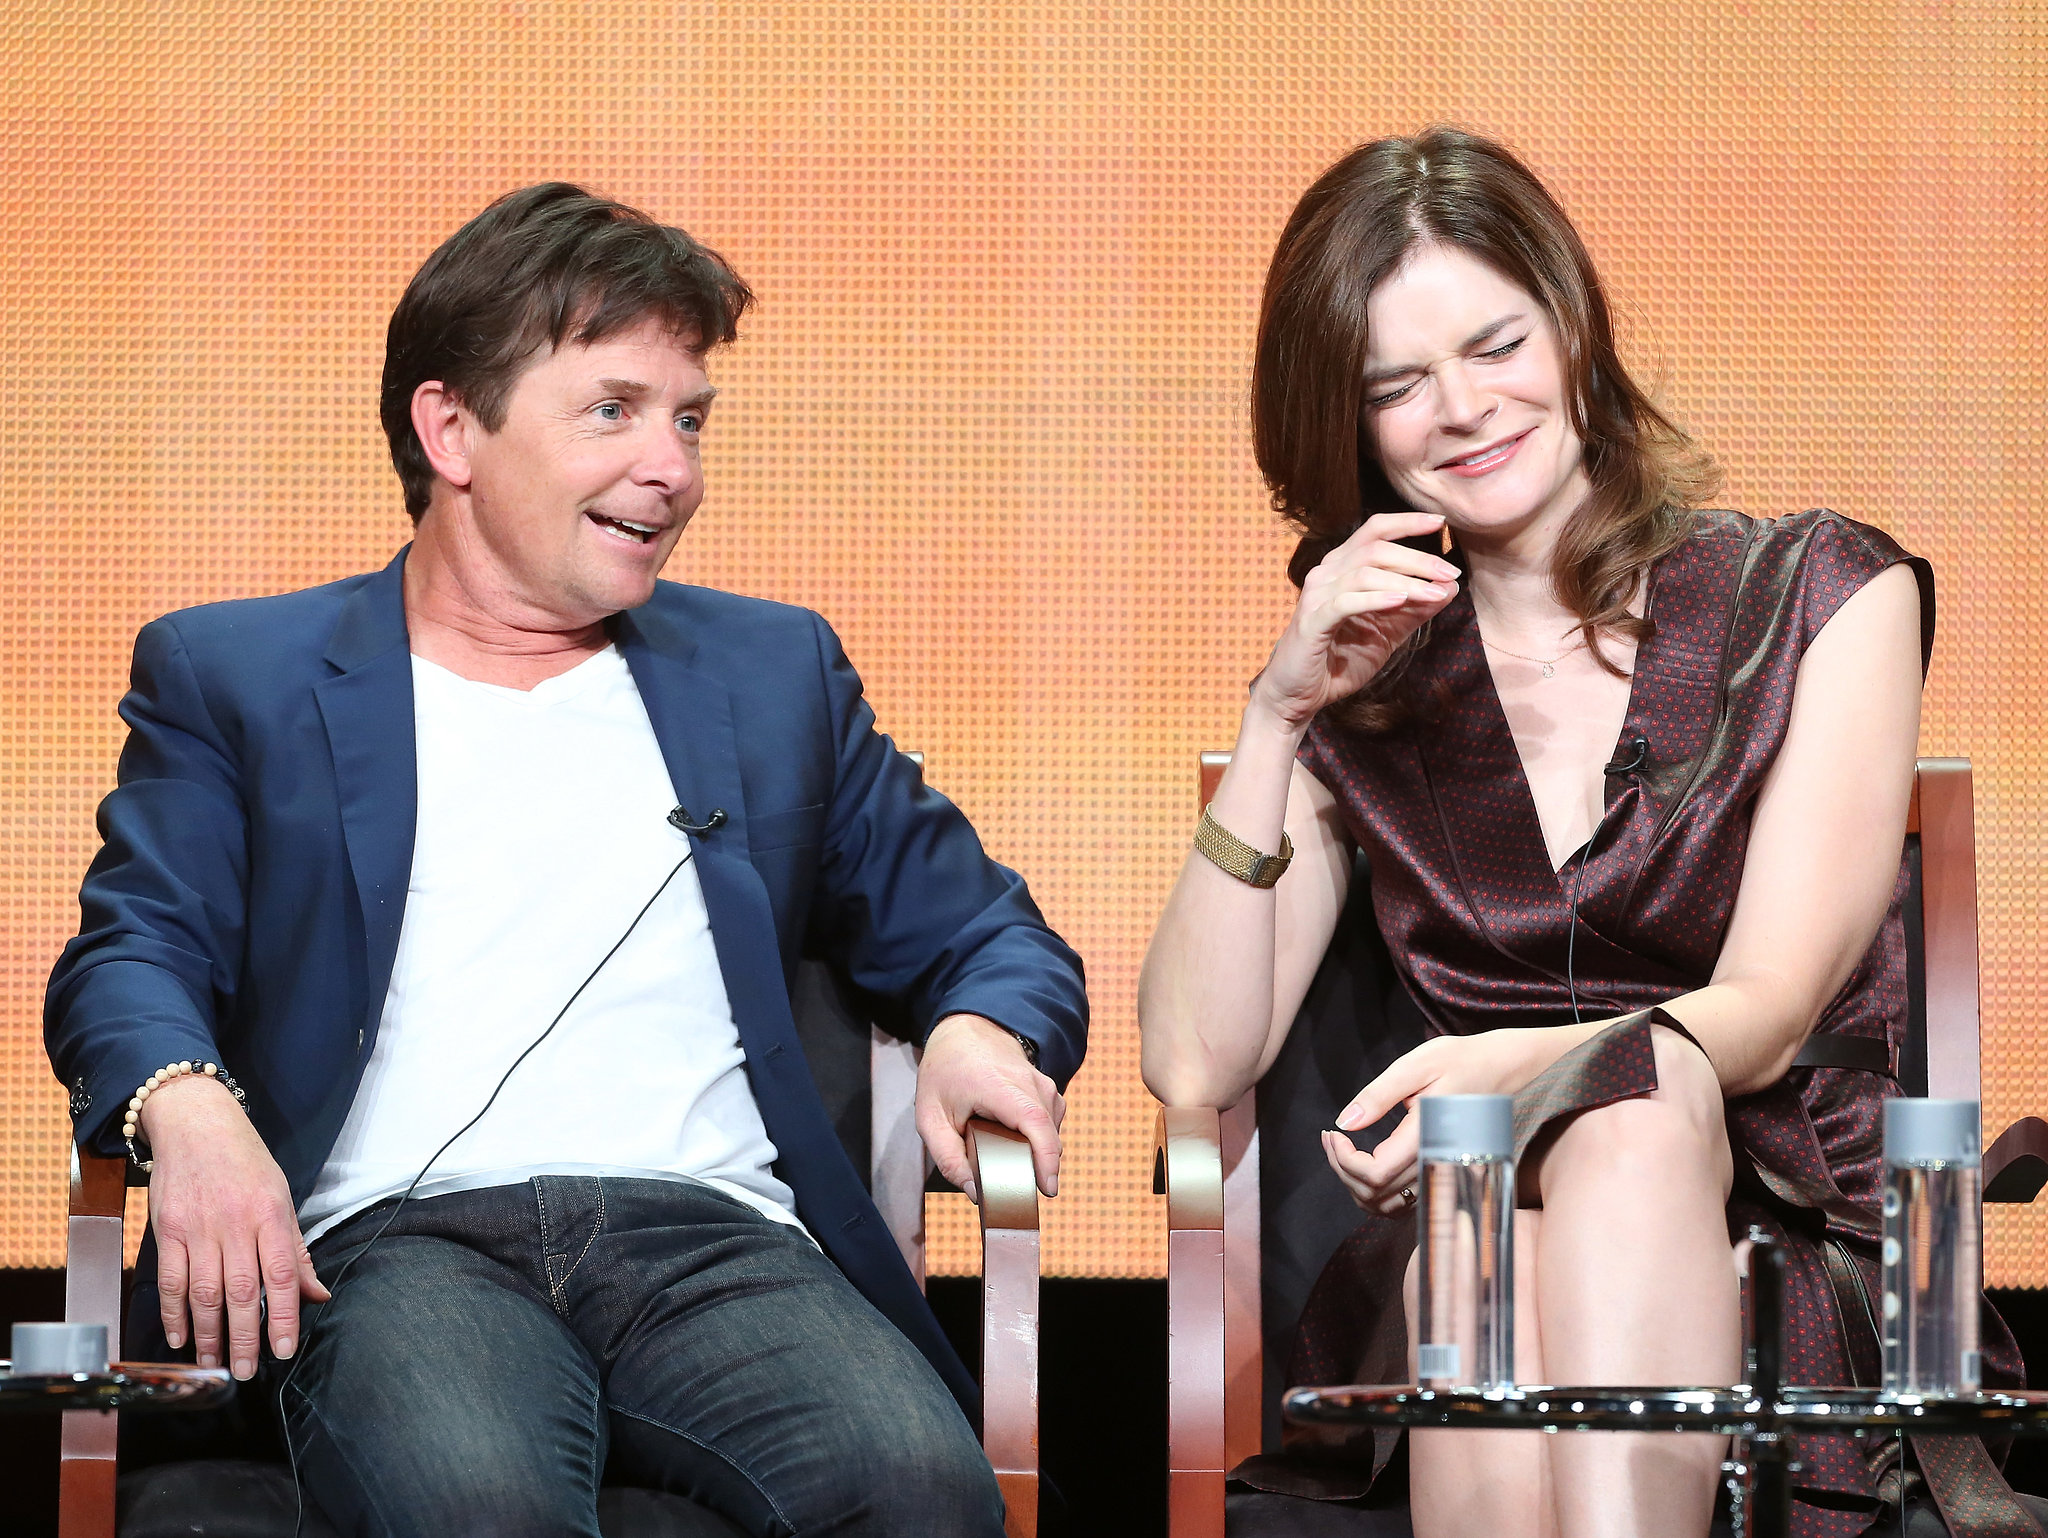 Betsy Brandt and Michael J. Fox joked around on stage.